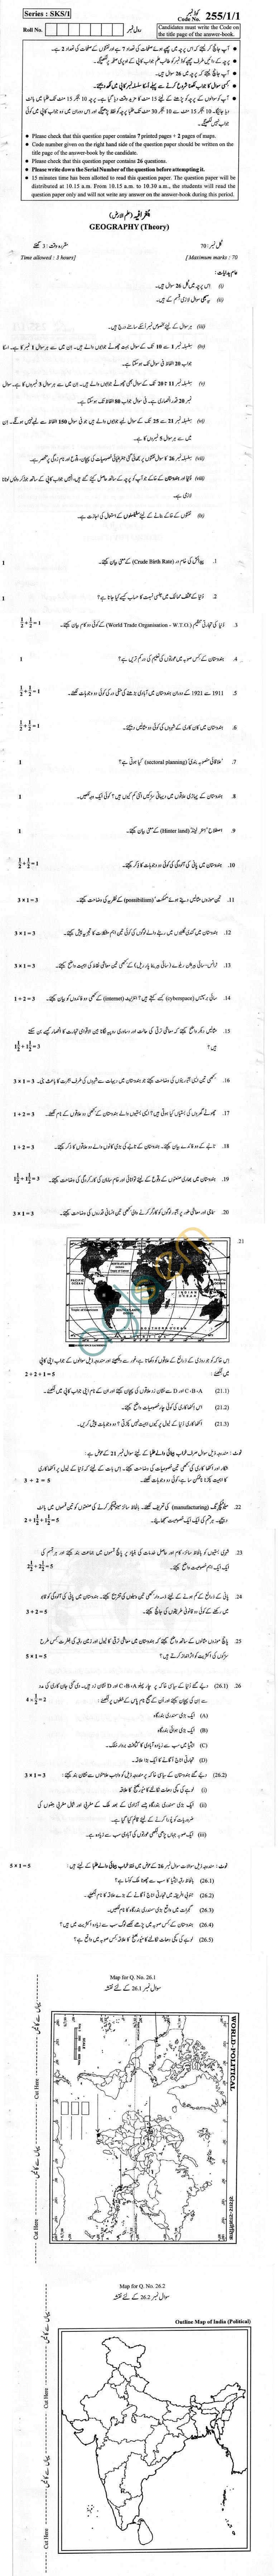 CBSE Board Exam 2013 Class XII Question Paper - Geography (Urdu Version)